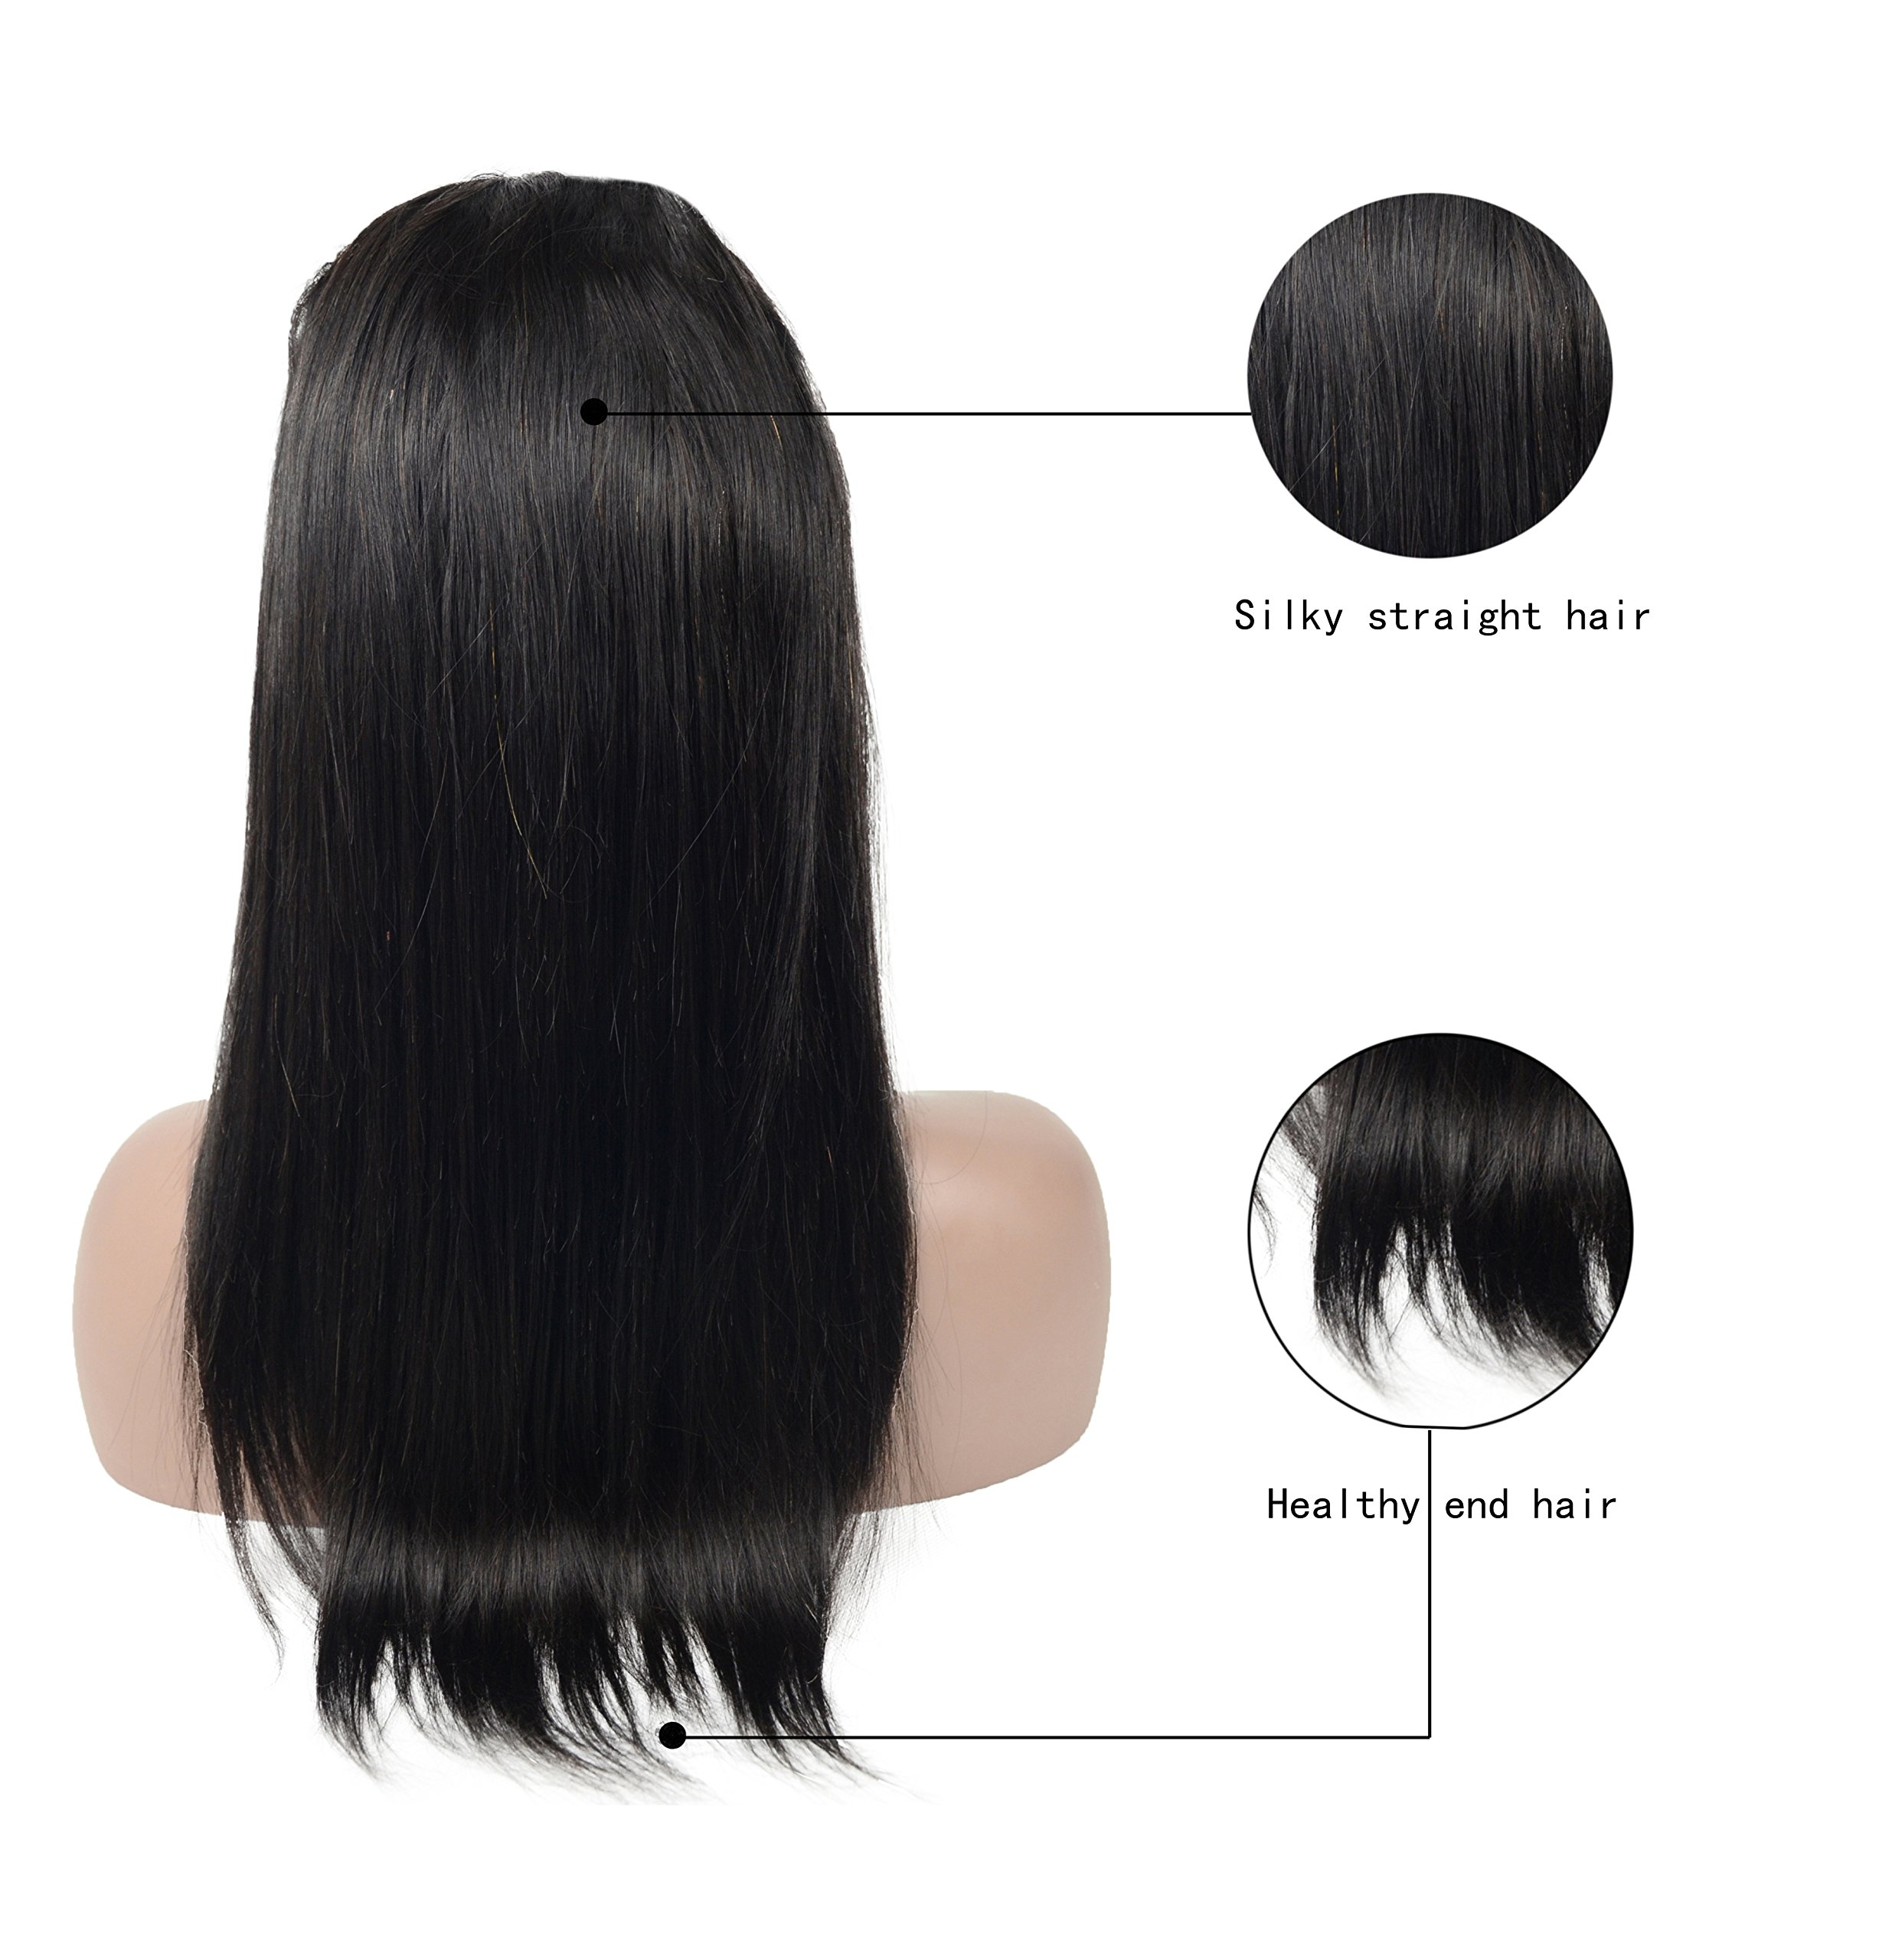 Pre Plucked 360 Lace Front Wigs Human Hair Straight, Veer Brazilian Virgin Human Hair With Baby Hair for Women Natural Black Color(#1B) 16inch